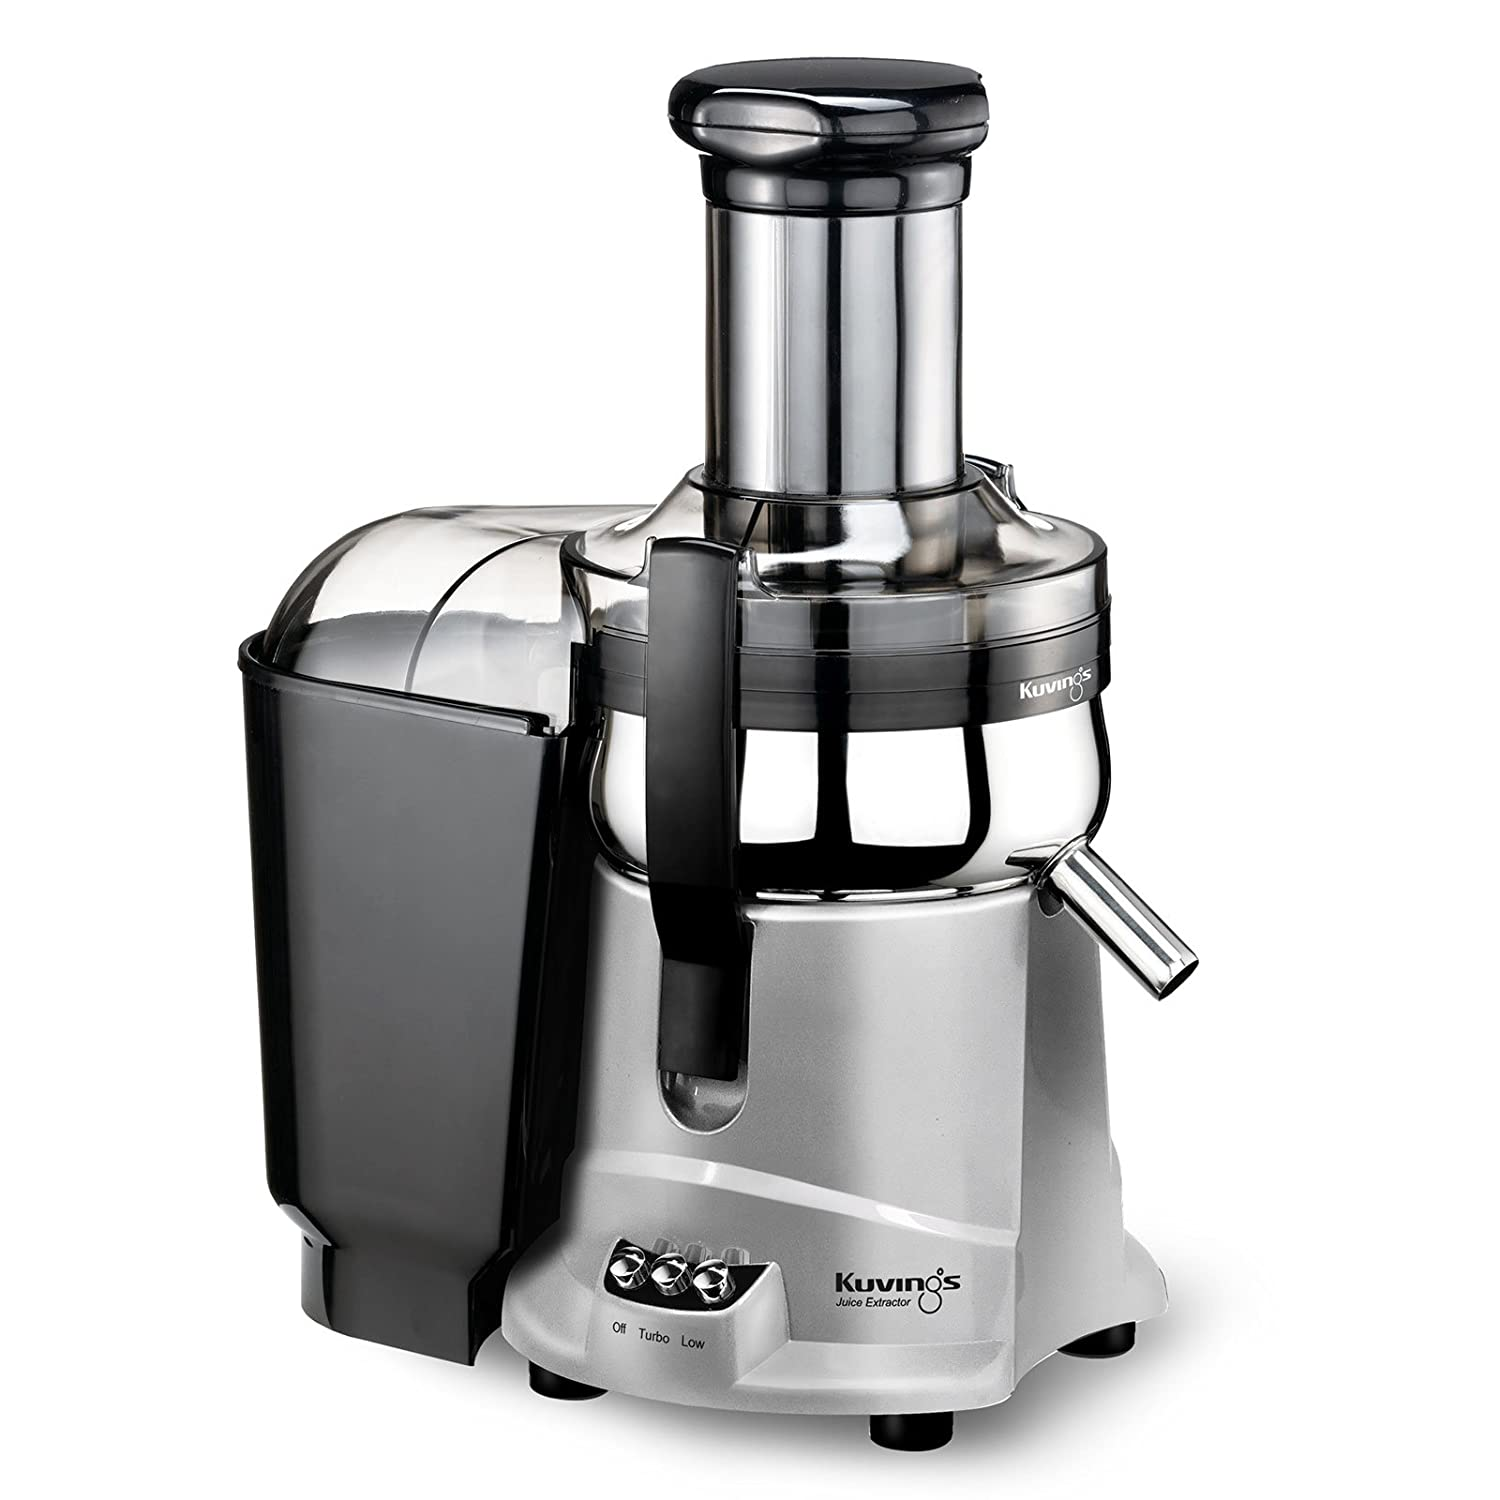 Best Omega Masticating Juicer 2016 : Best Juicer Reviews 2016